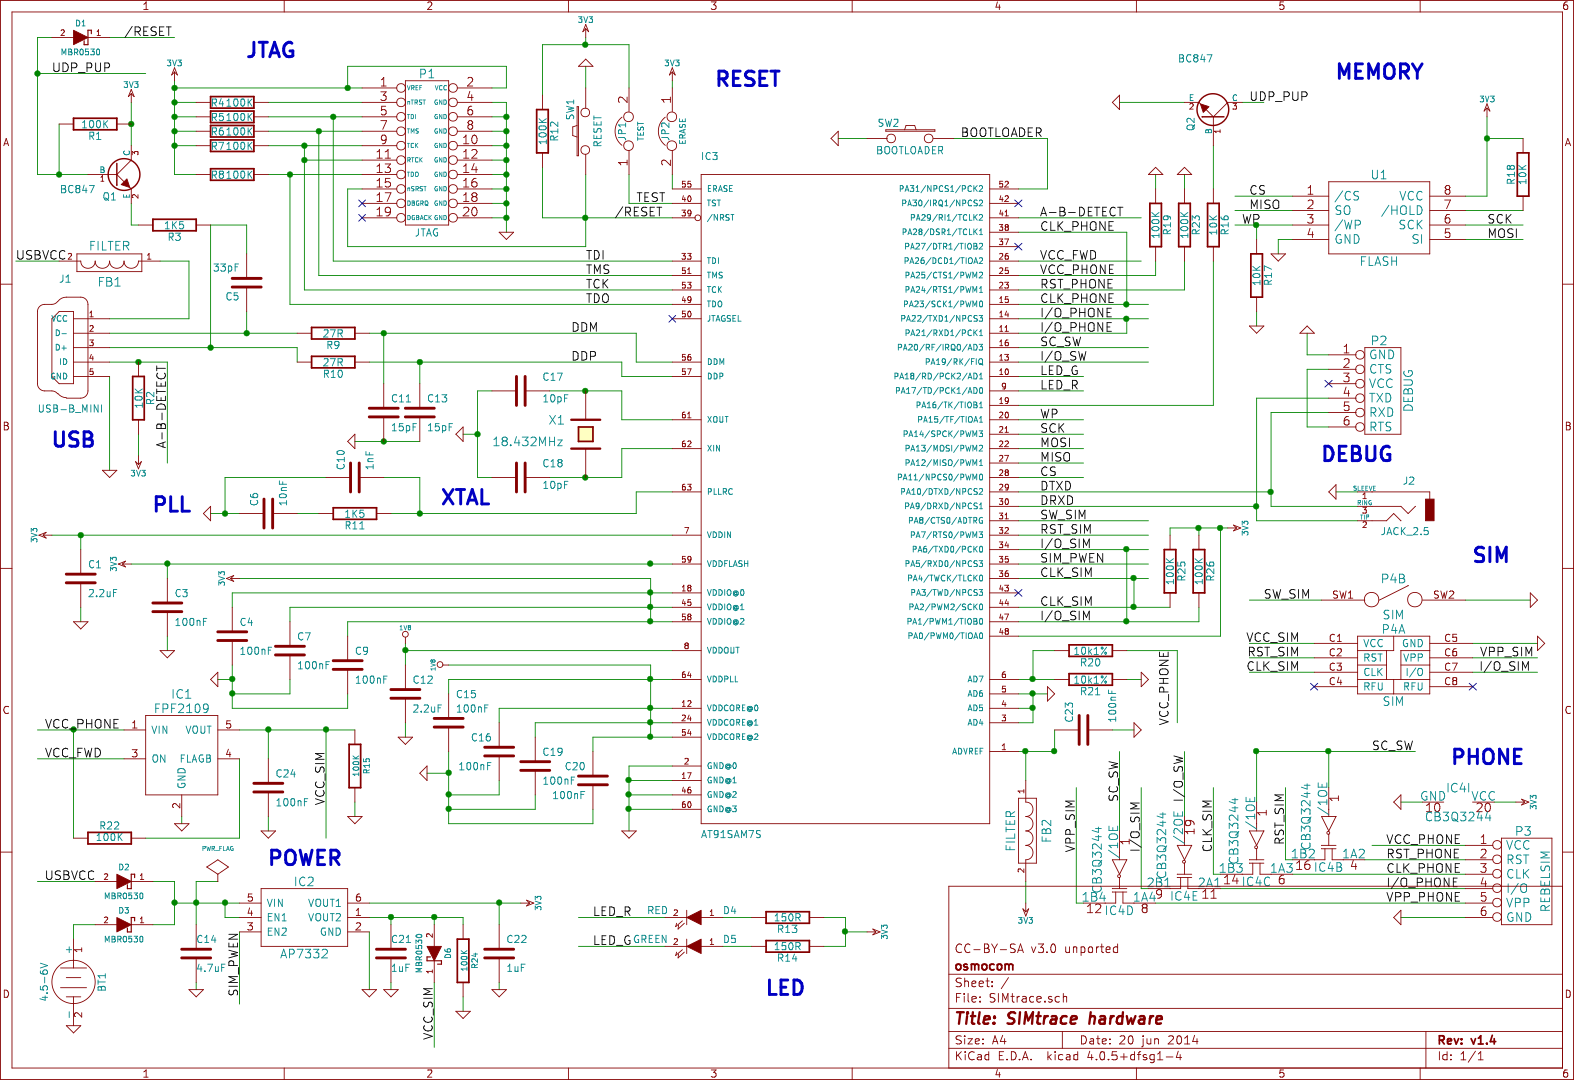 Simtrace Hardware Open Source Mobile Communications Ve Also Been Looking For The Schematics And Gerber Files But They V14 Schematic View